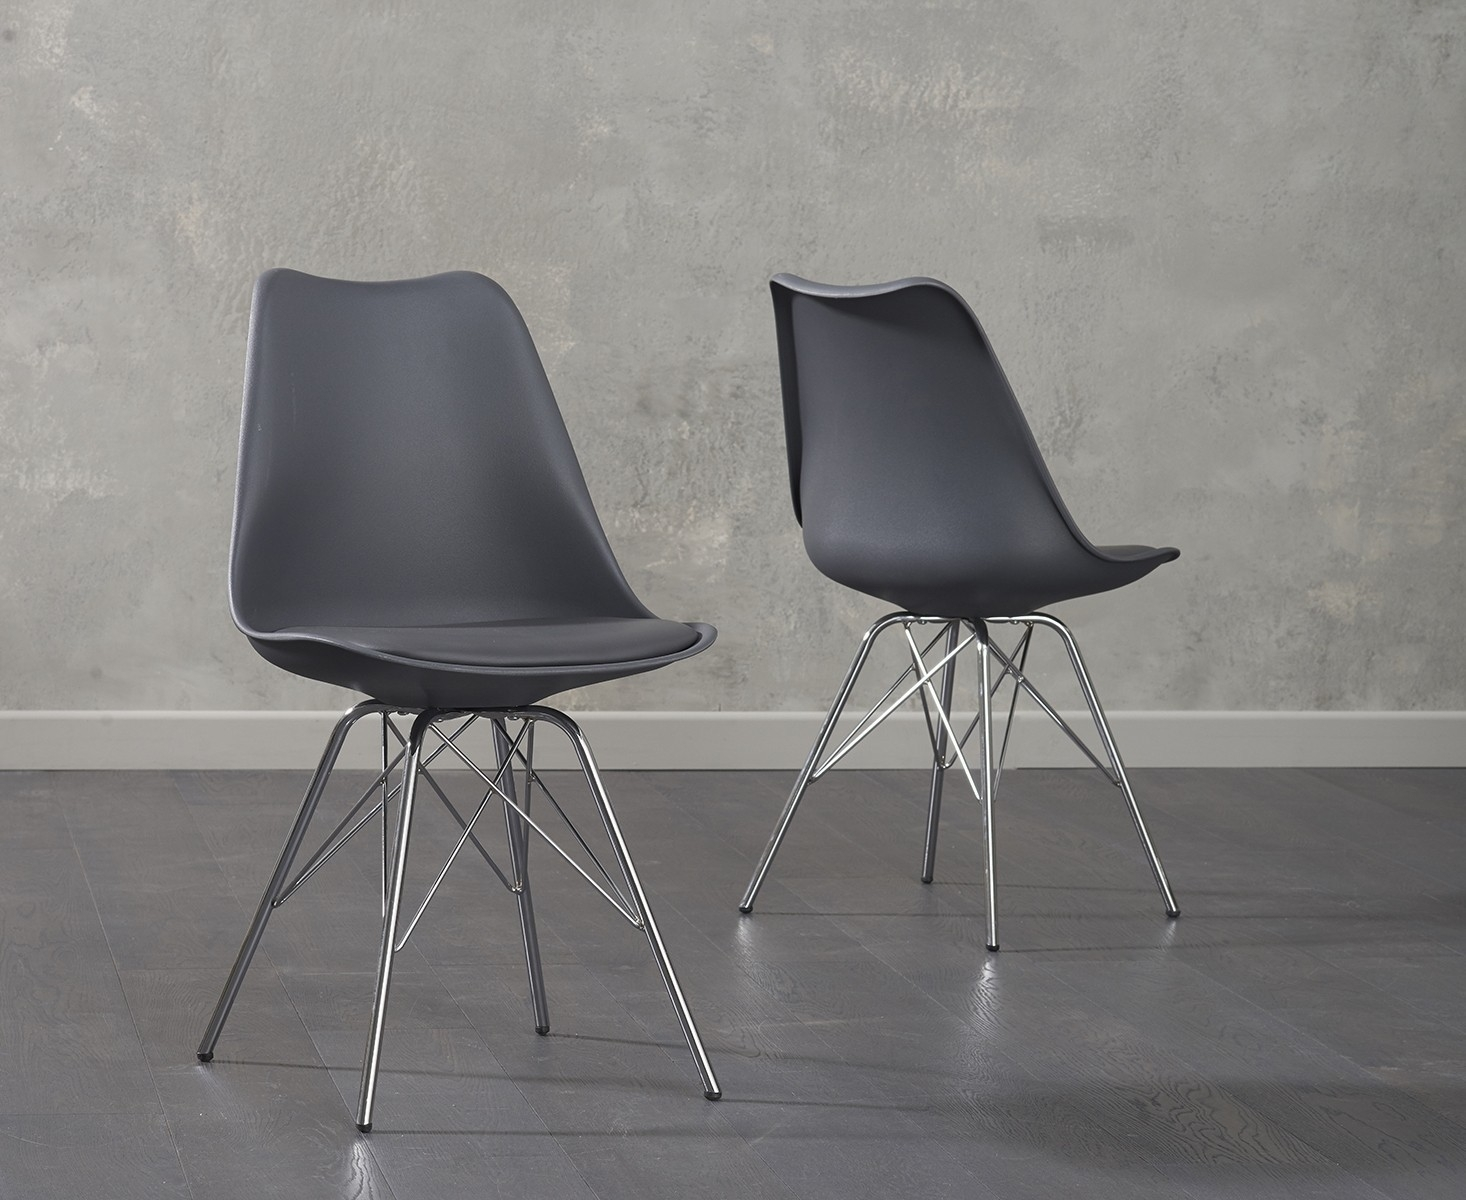 chrome dining chairs uk blue velvet tufted chair buy mark harris calabasus dark grey faux leather